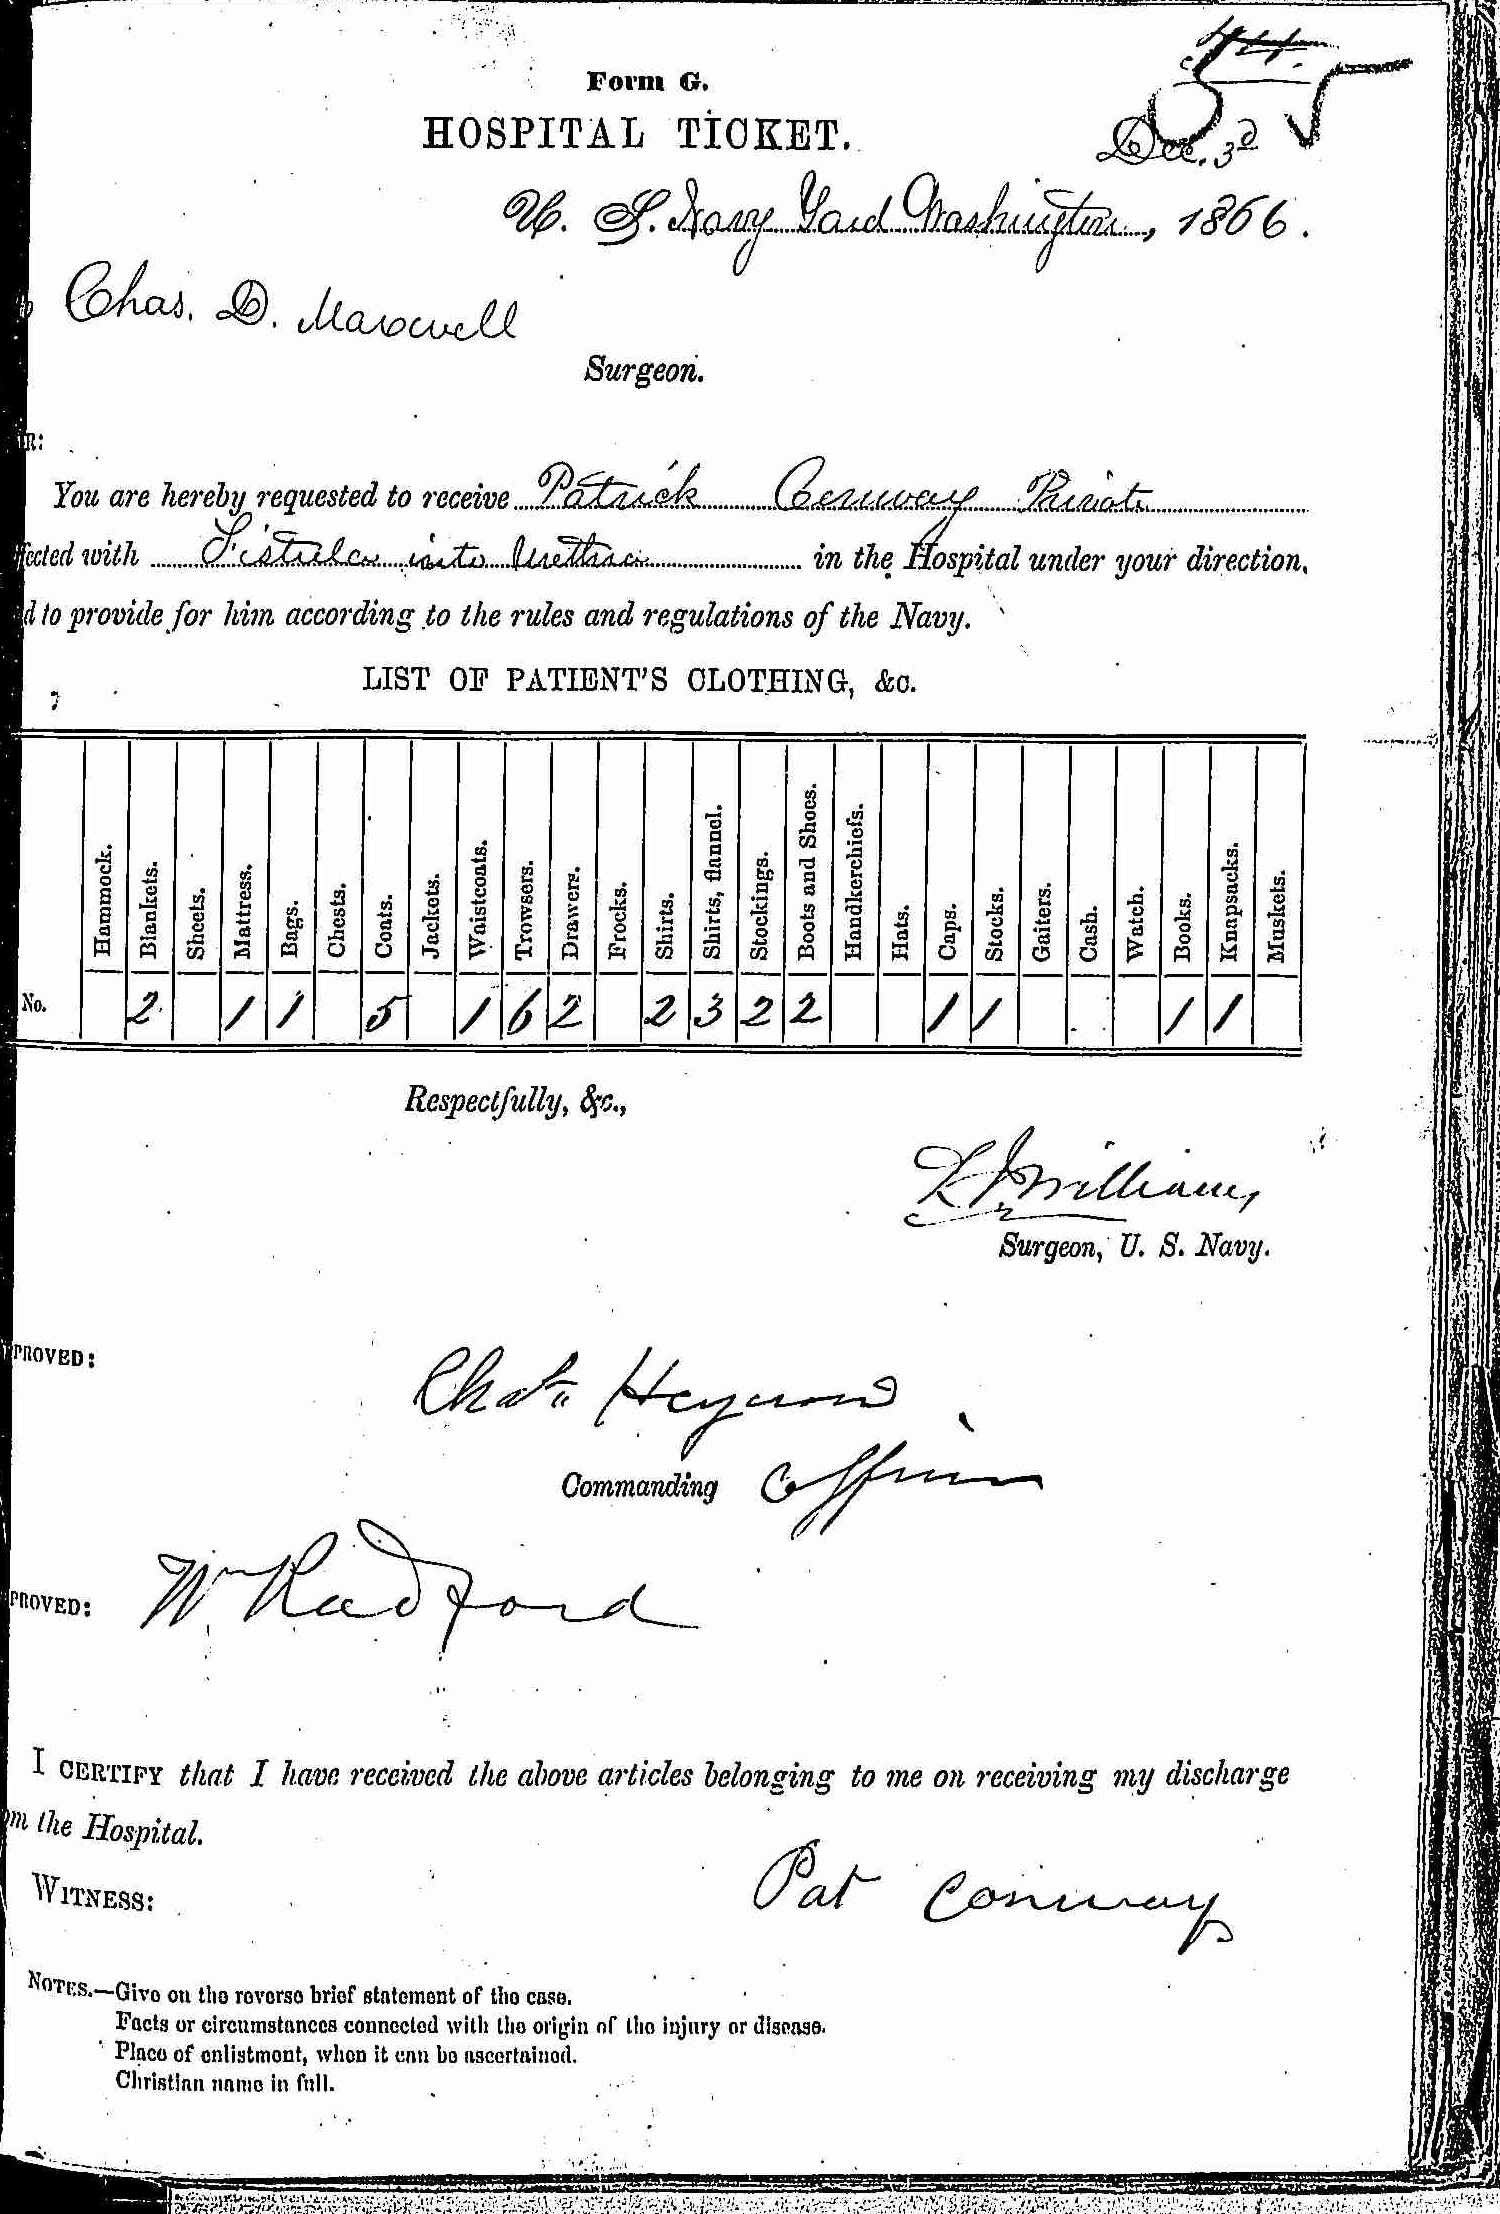 Entry for Patrick Conway (page 1 of 2) in the log Hospital Tickets and Case Papers - Naval Hospital - Washington, D.C. - 1865-68